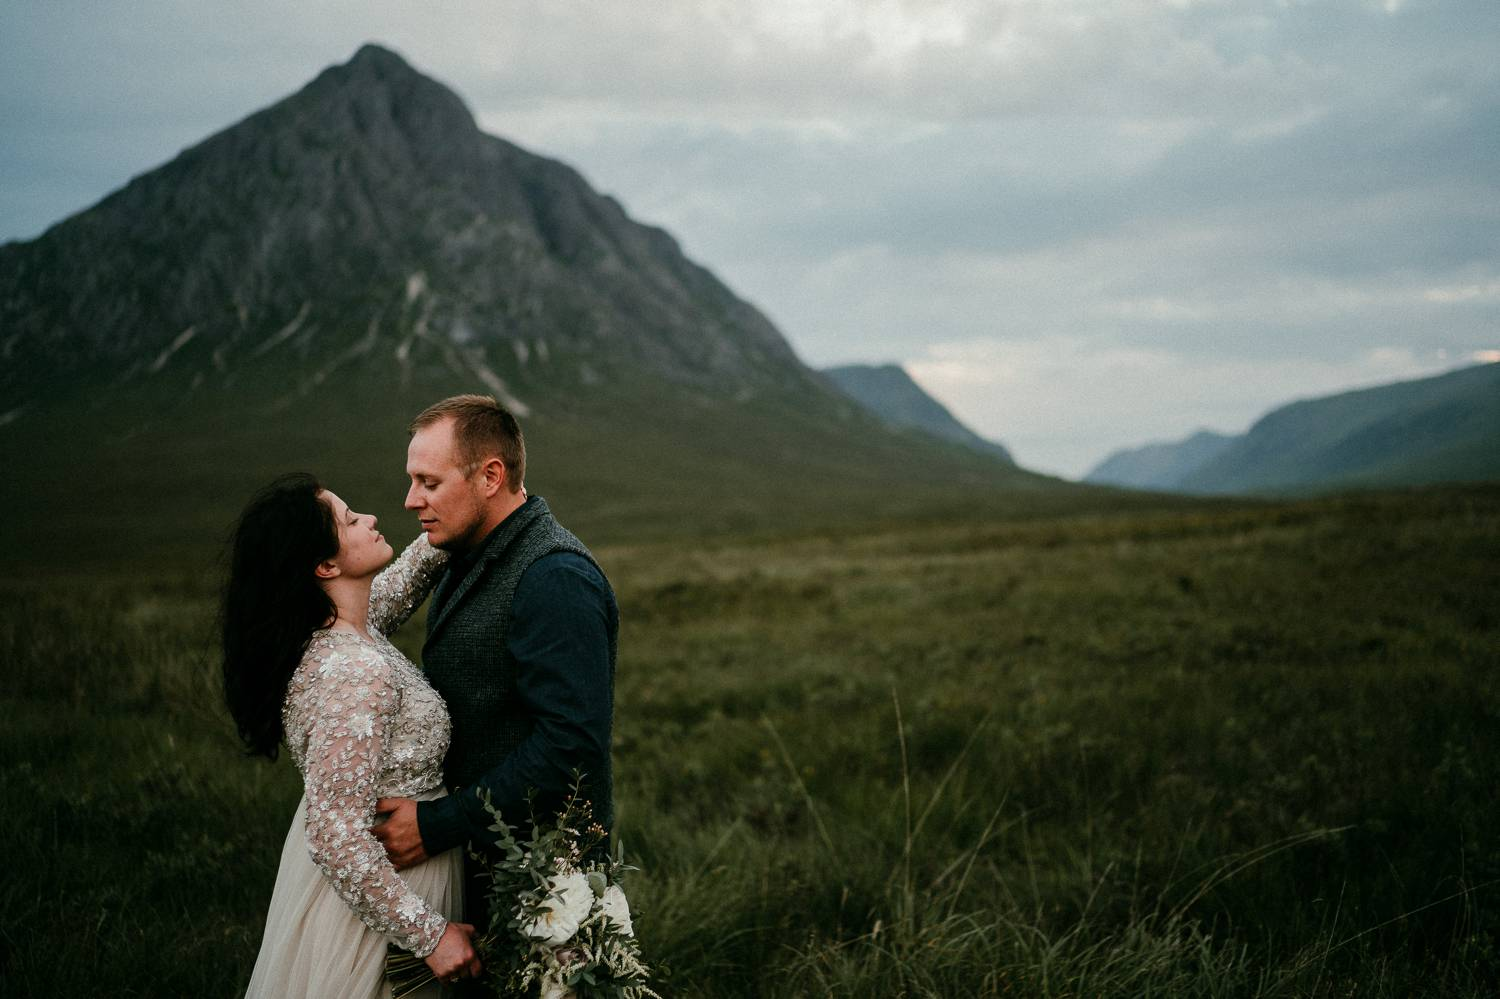 A bride and groom gaze into one another's faces in the shadow of a tall Irish mountain. Photographed by Rob Dight, who began selling photography prints to ensure his clients would always have premium quality products.